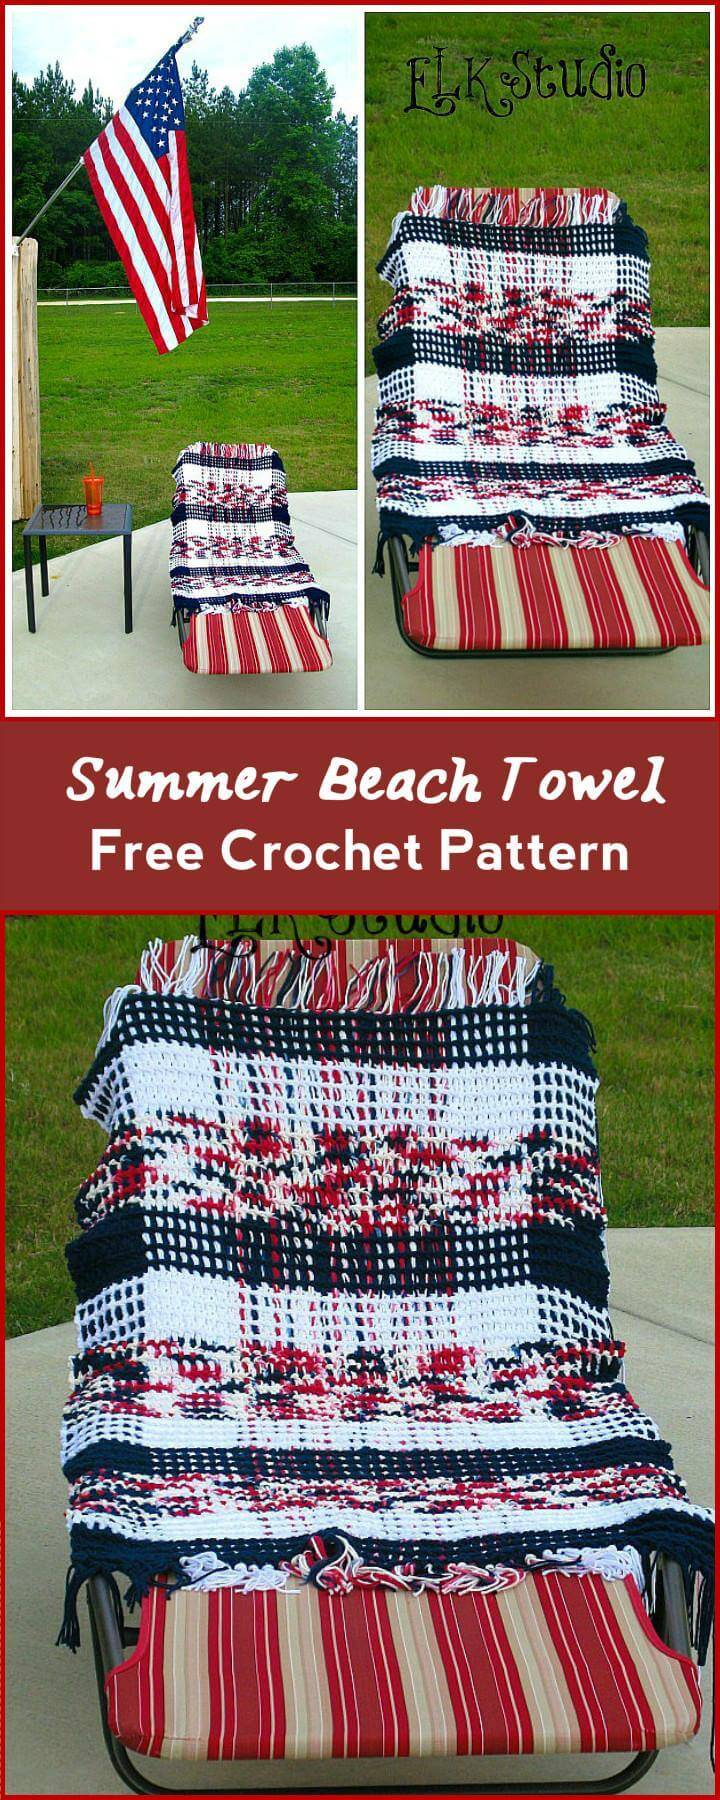 Summer Beach Towel Free Crochet Pattern